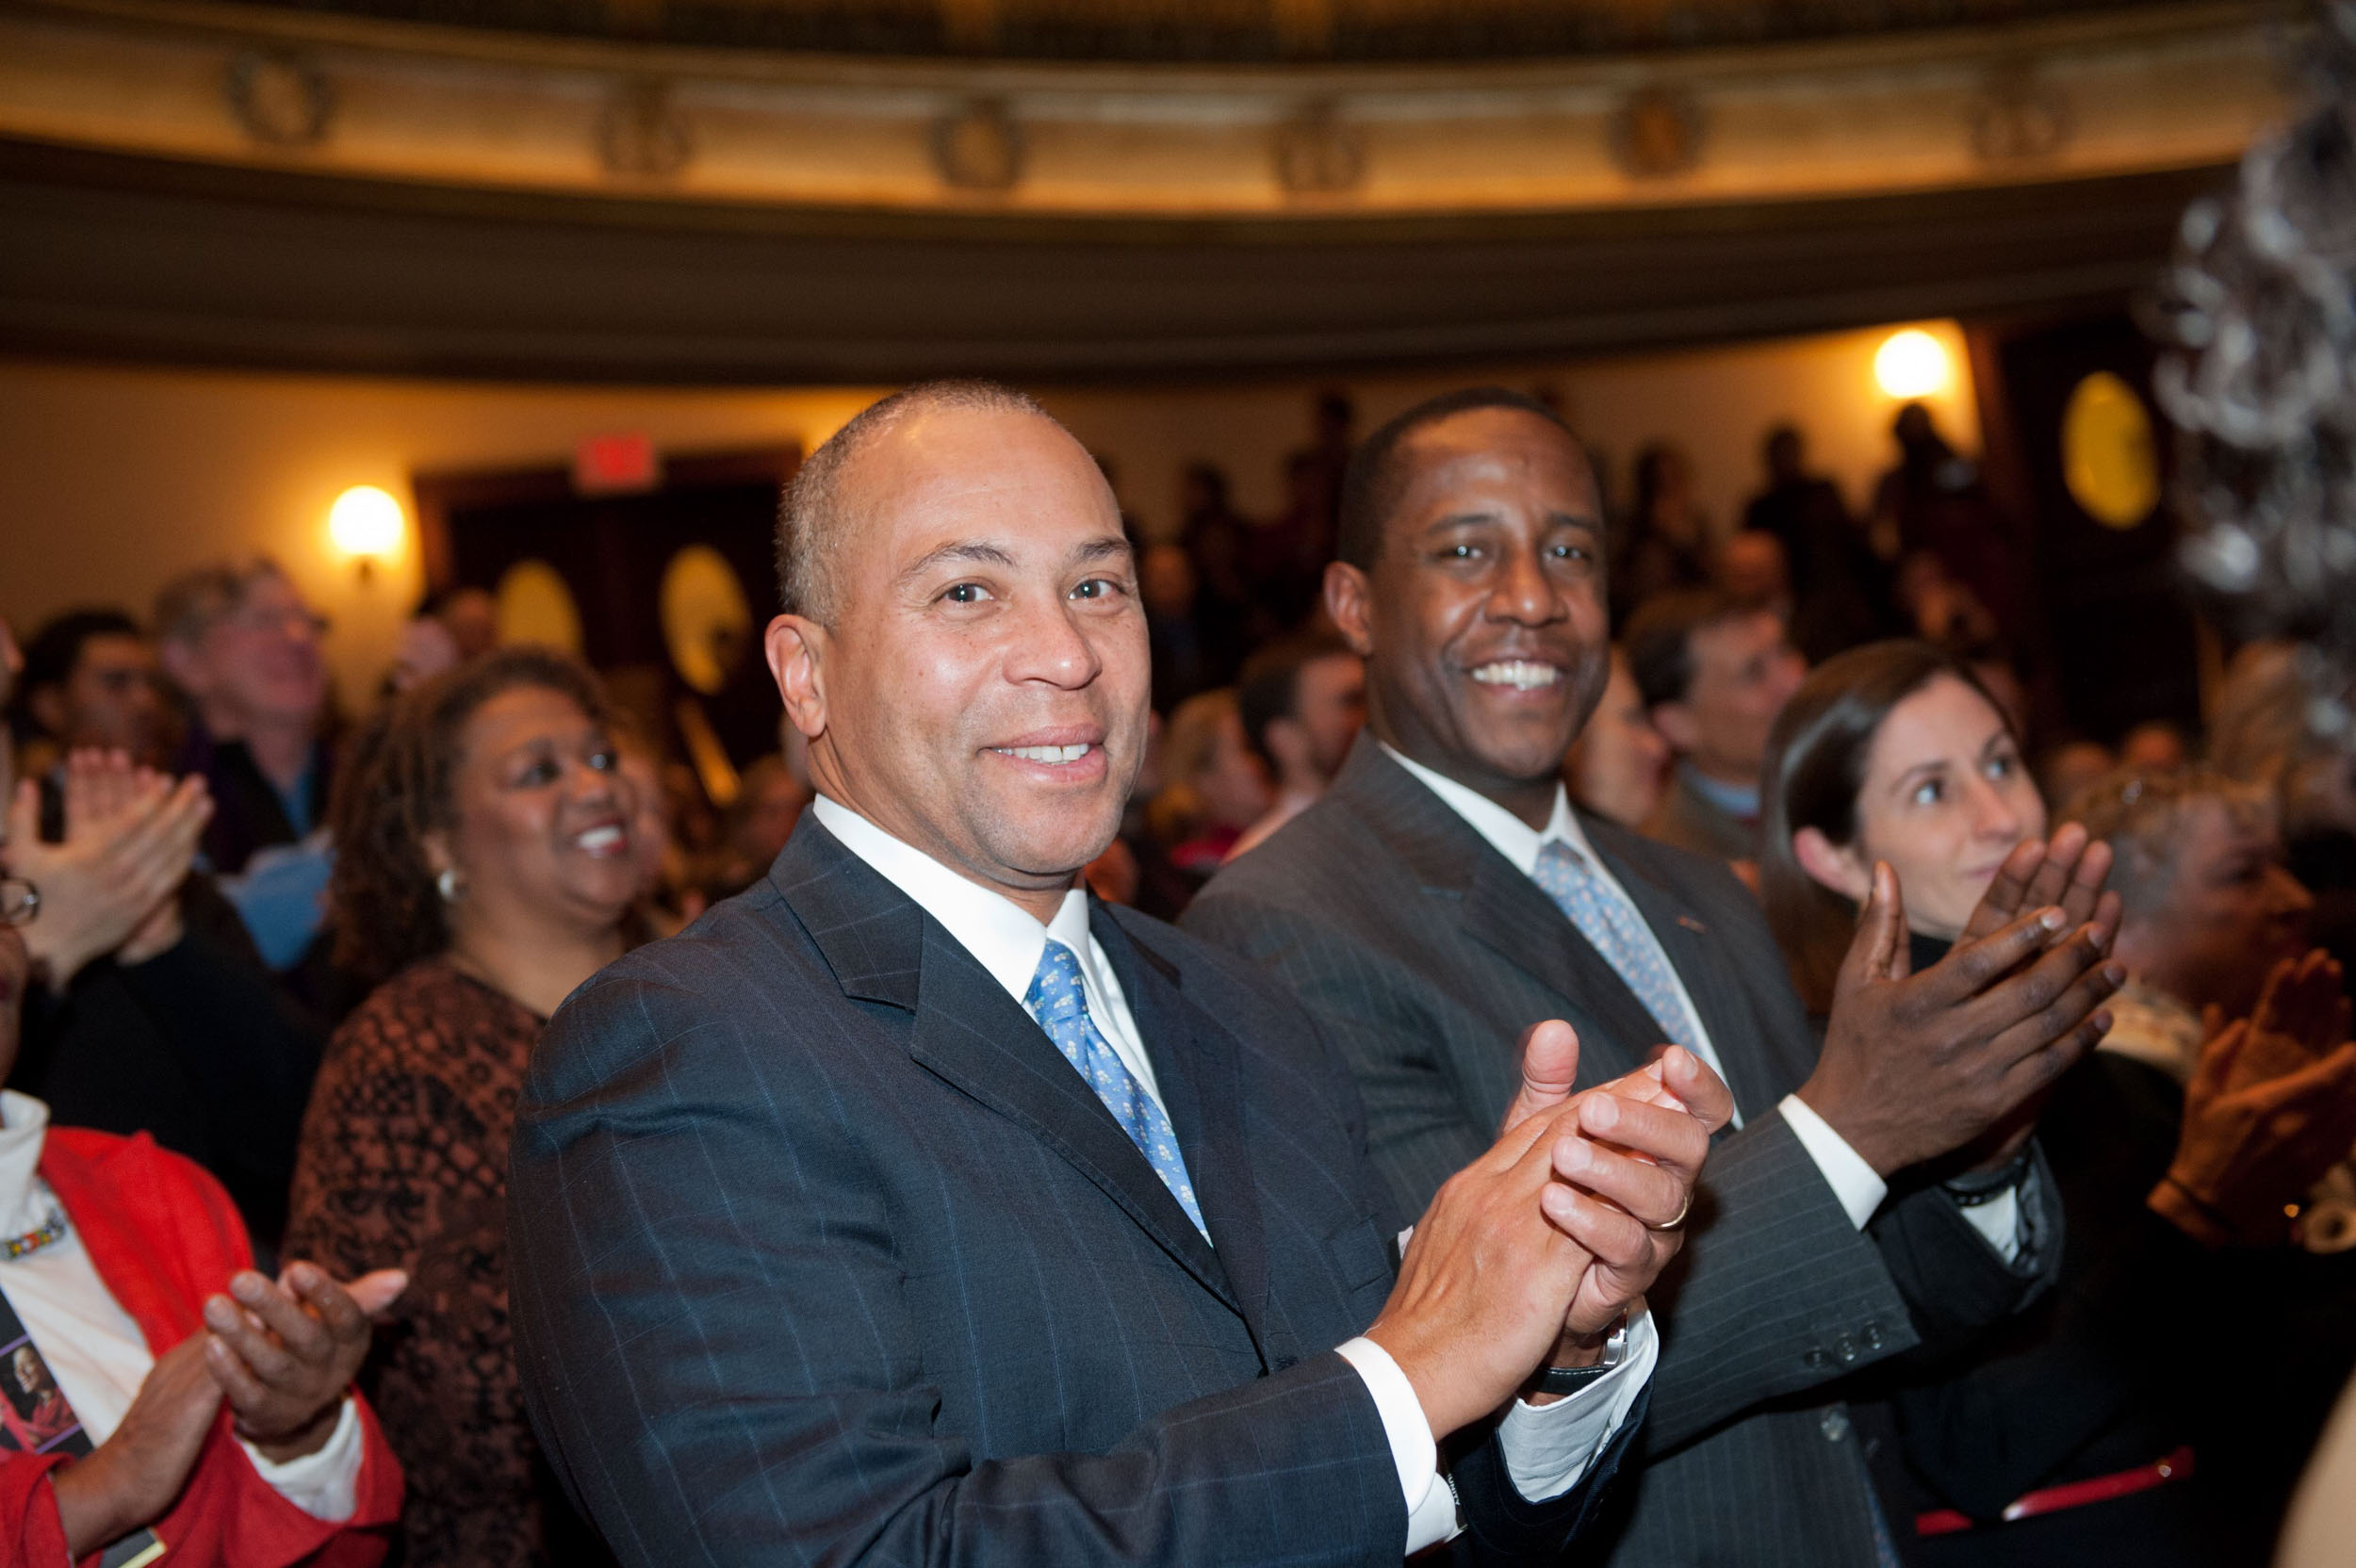 Maura Wayman Photography, Photography, Corporate Photography,Massachusetts, Boston, Metro West, events, Corporate events, Photographer, Functions, Parties, Fundraisers, Duval Patrick, Boston Childrens Choir, Symphony hall, MLK, Martin Luther King Day, clapping, black man,